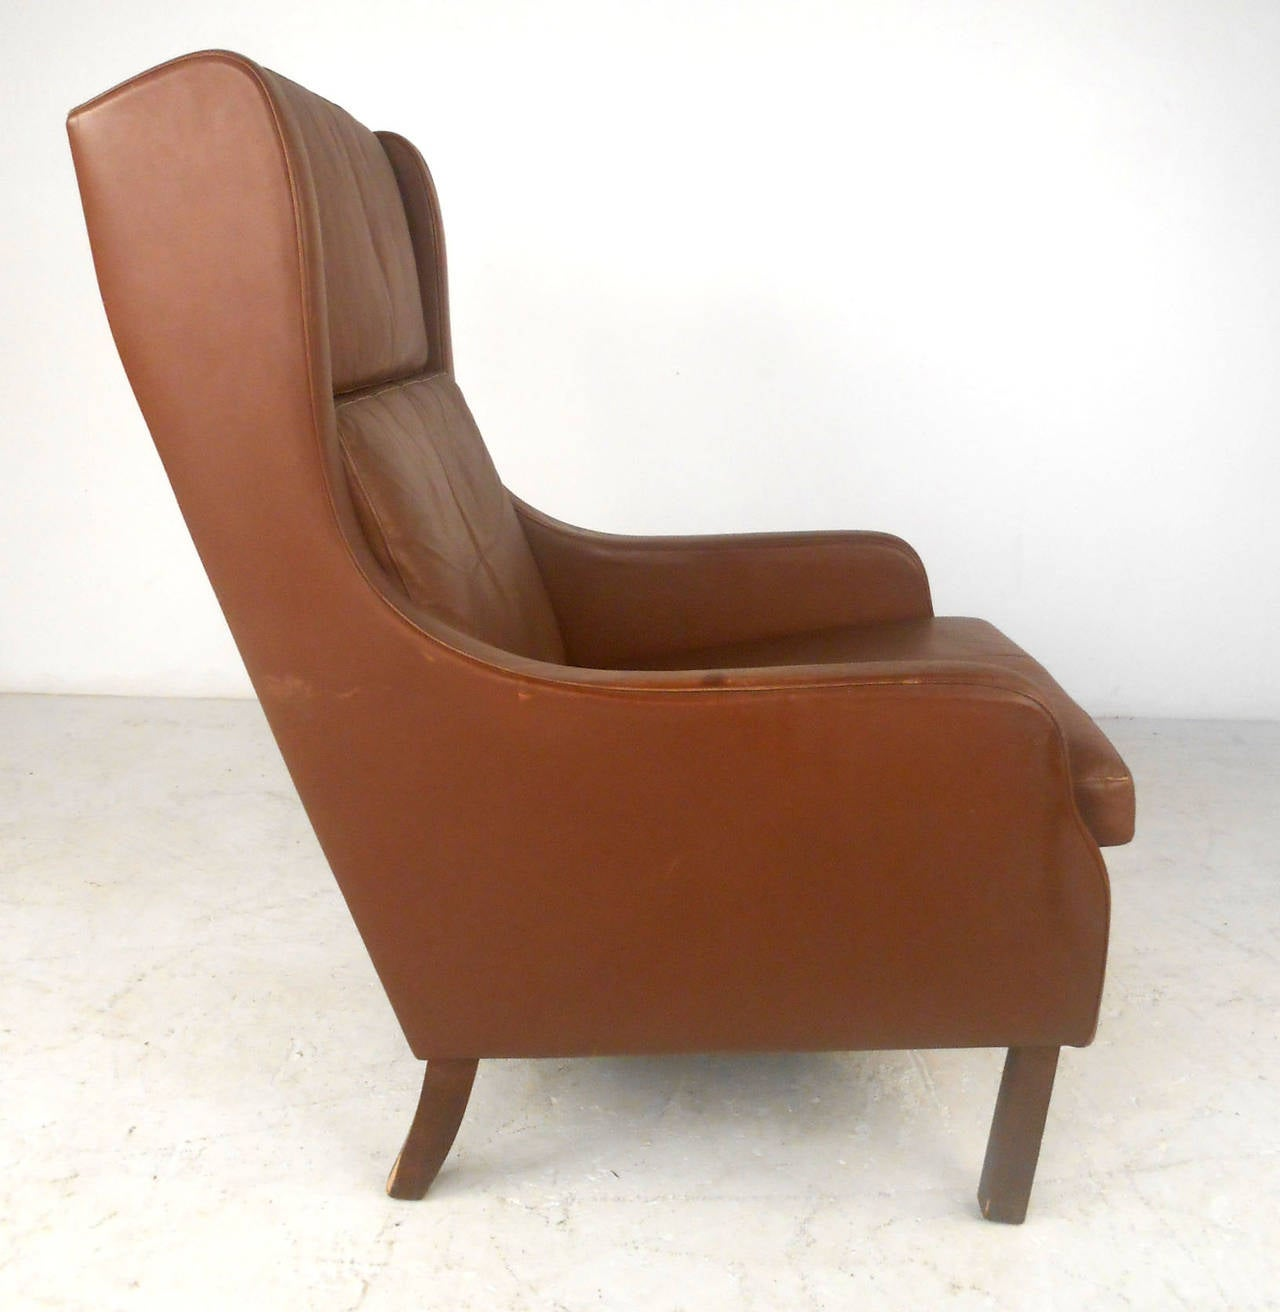 Mid-20th Century Unique Mid-Century Modern Vintage Leather Danish Lounge Chair For Sale